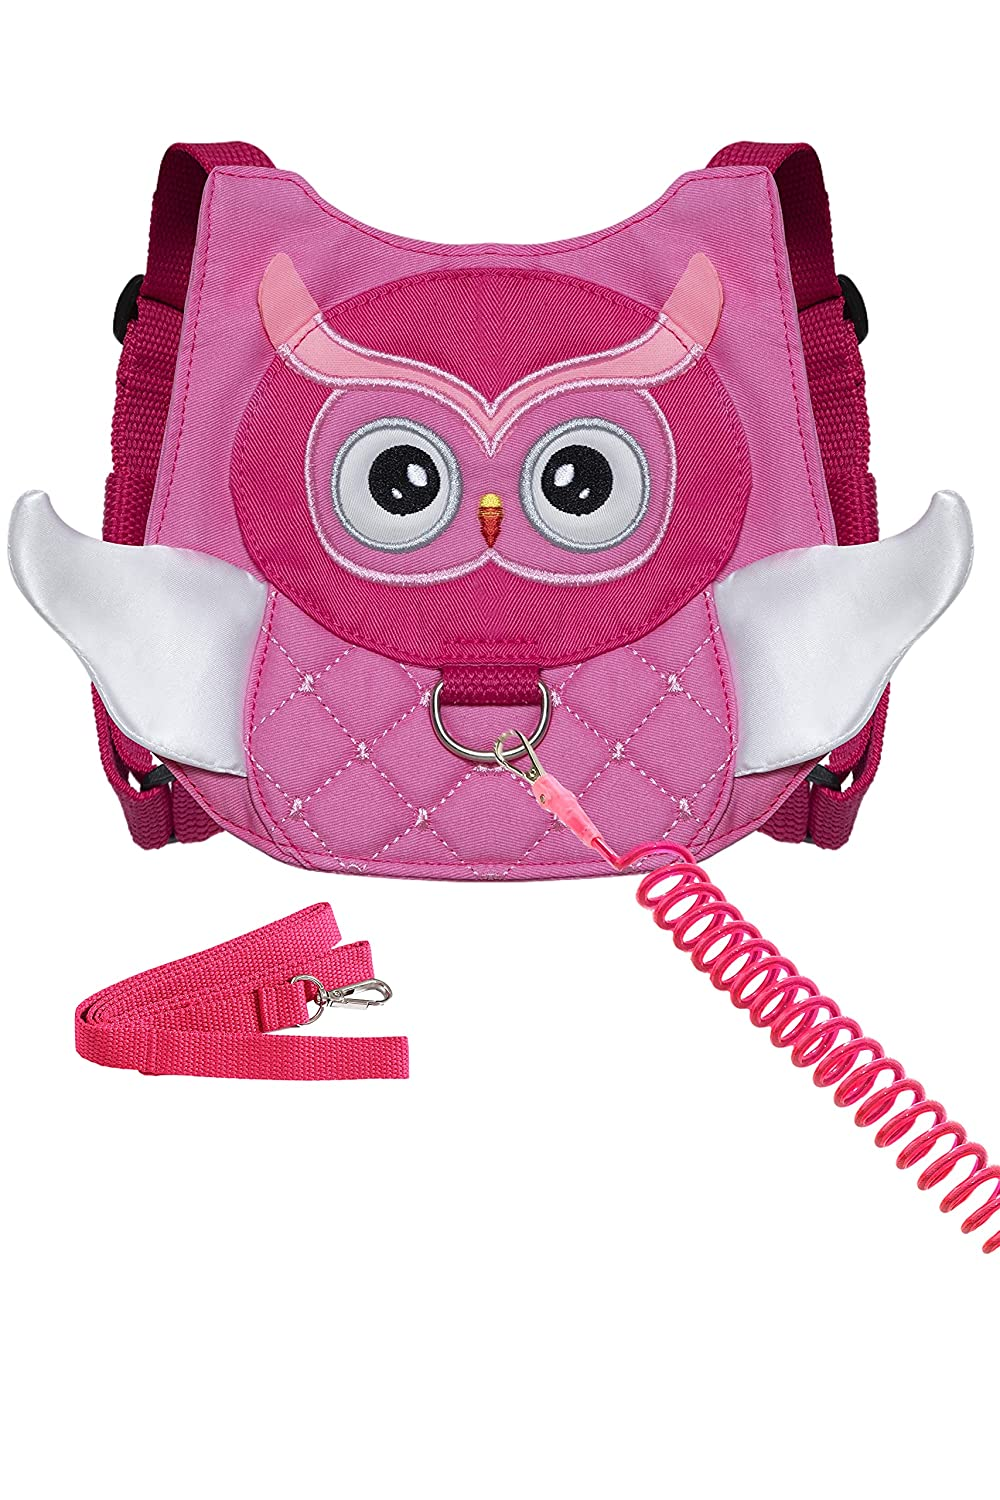 Owl Toddler Harness with Leash Child Anti-Lost Wrist Link Leash Kid Wristband (Rose)